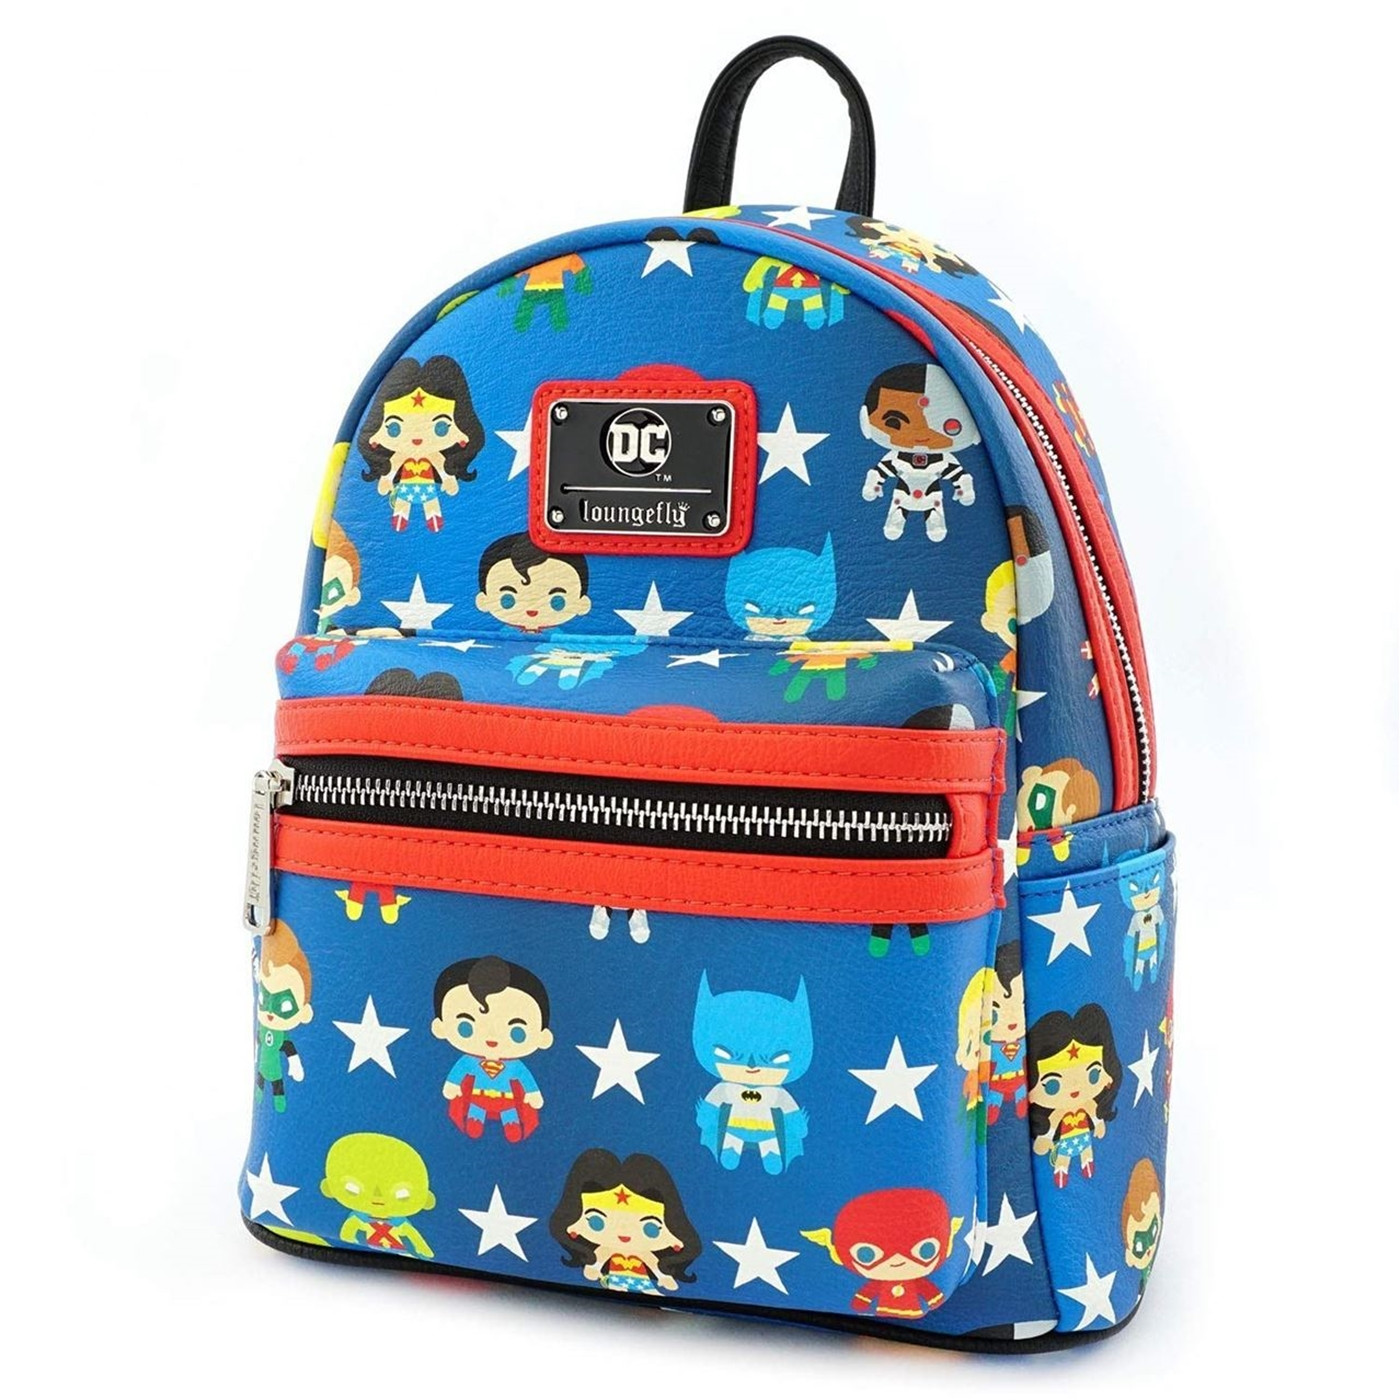 Justice League Chibi Mini Backpack